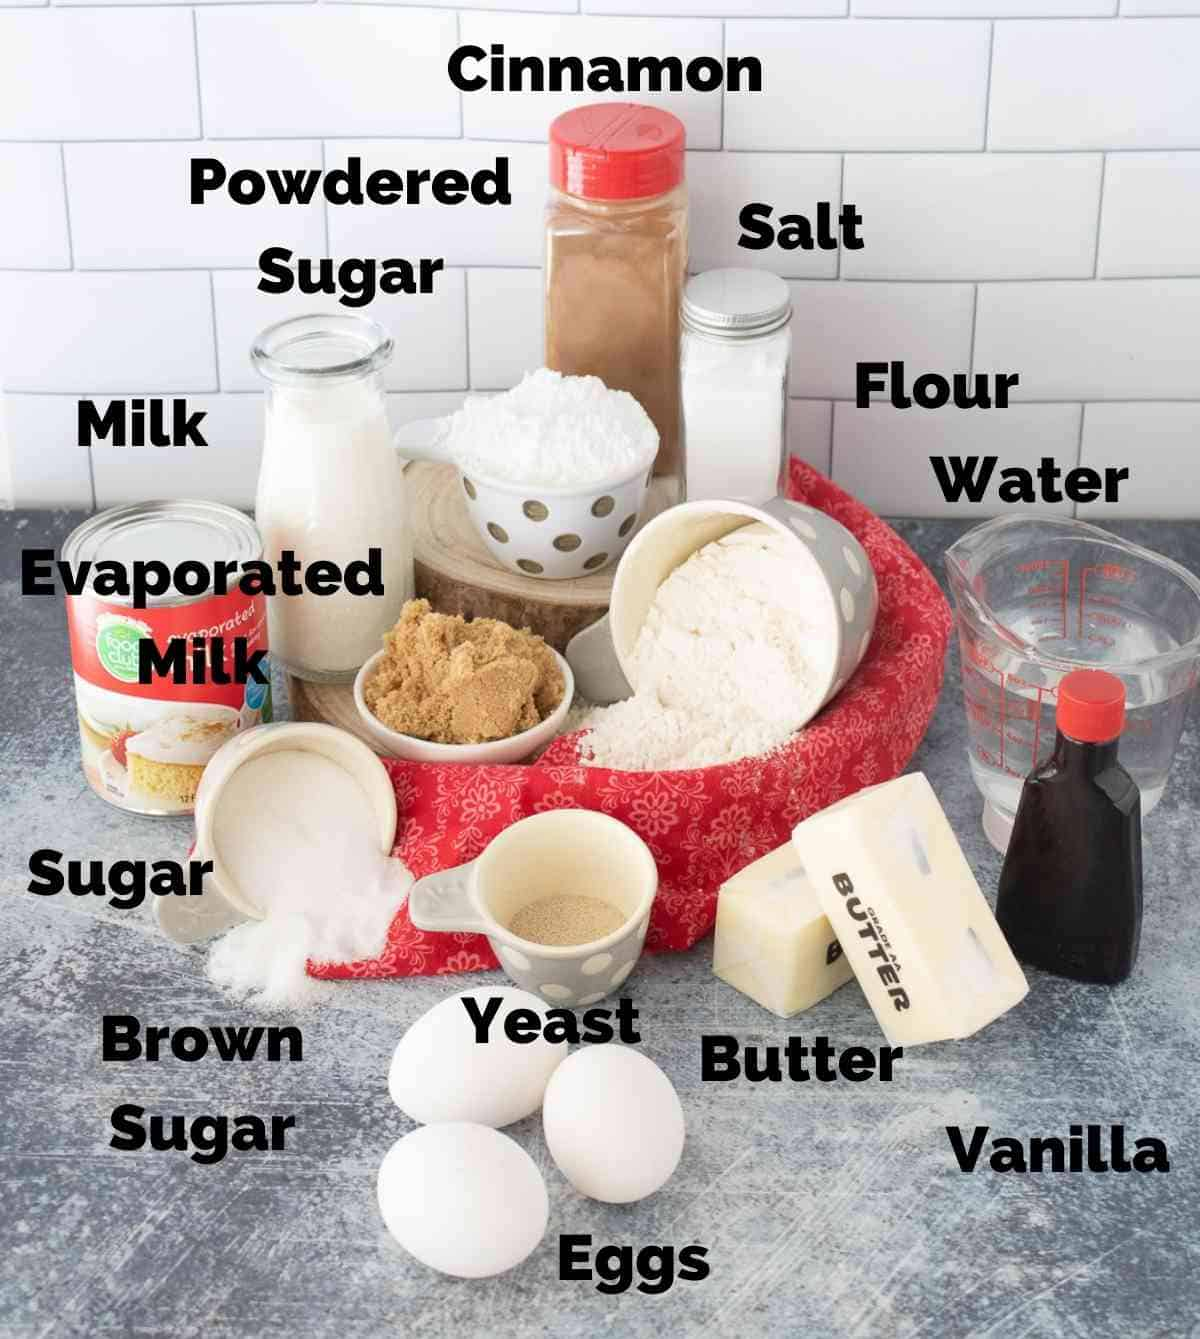 Ingredients to make both the bread and the syrup.